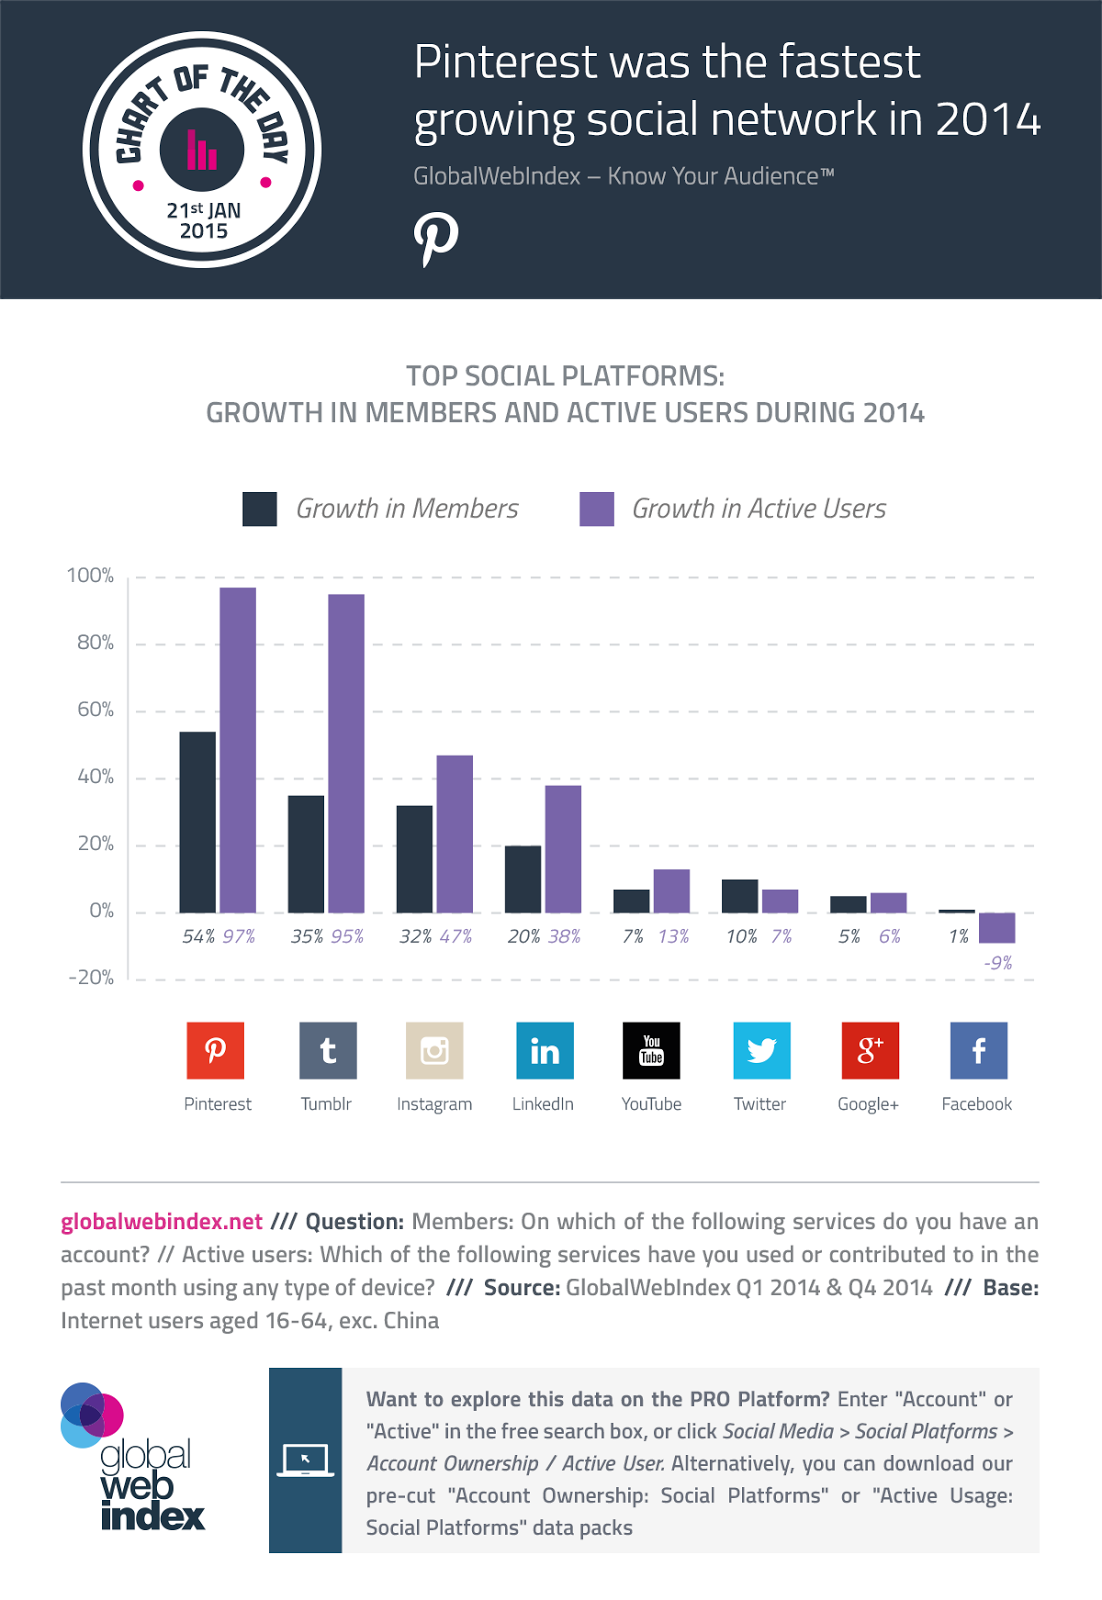 Tumblr and Pinterest now fastest-growing social media platforms - #infographic